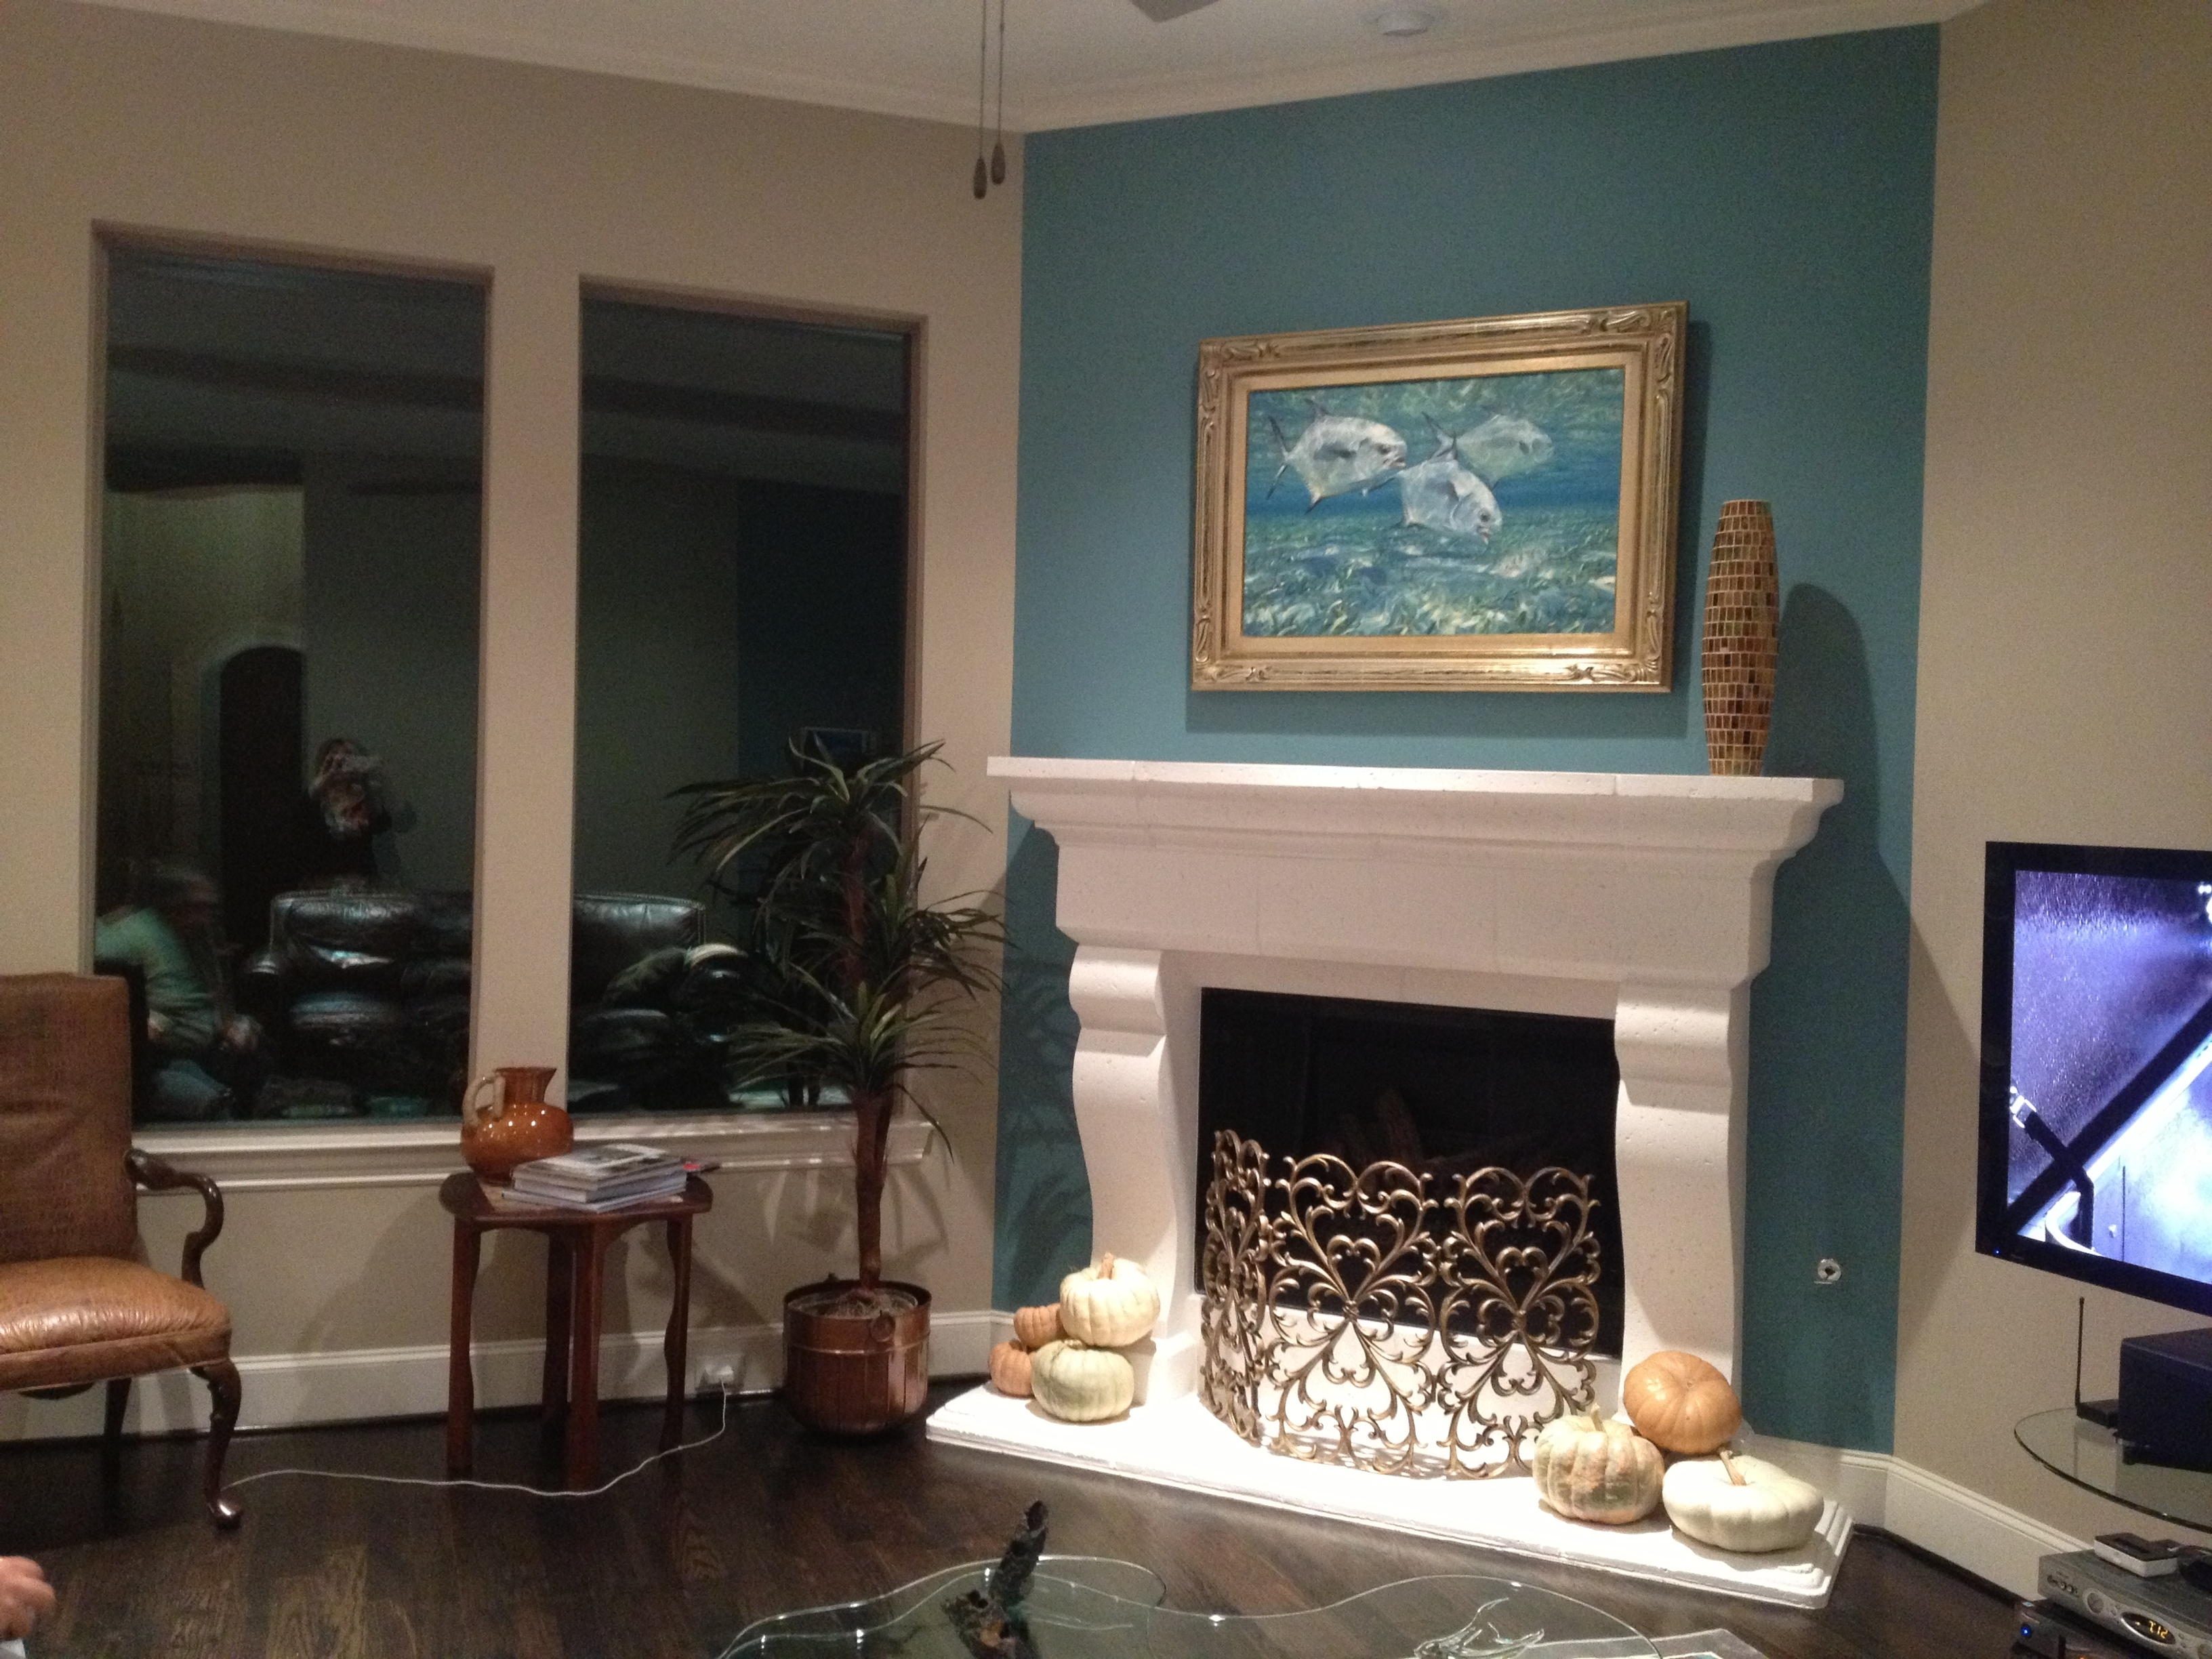 Fireplace Accent Wall Complements Painting (View 6 of 15)